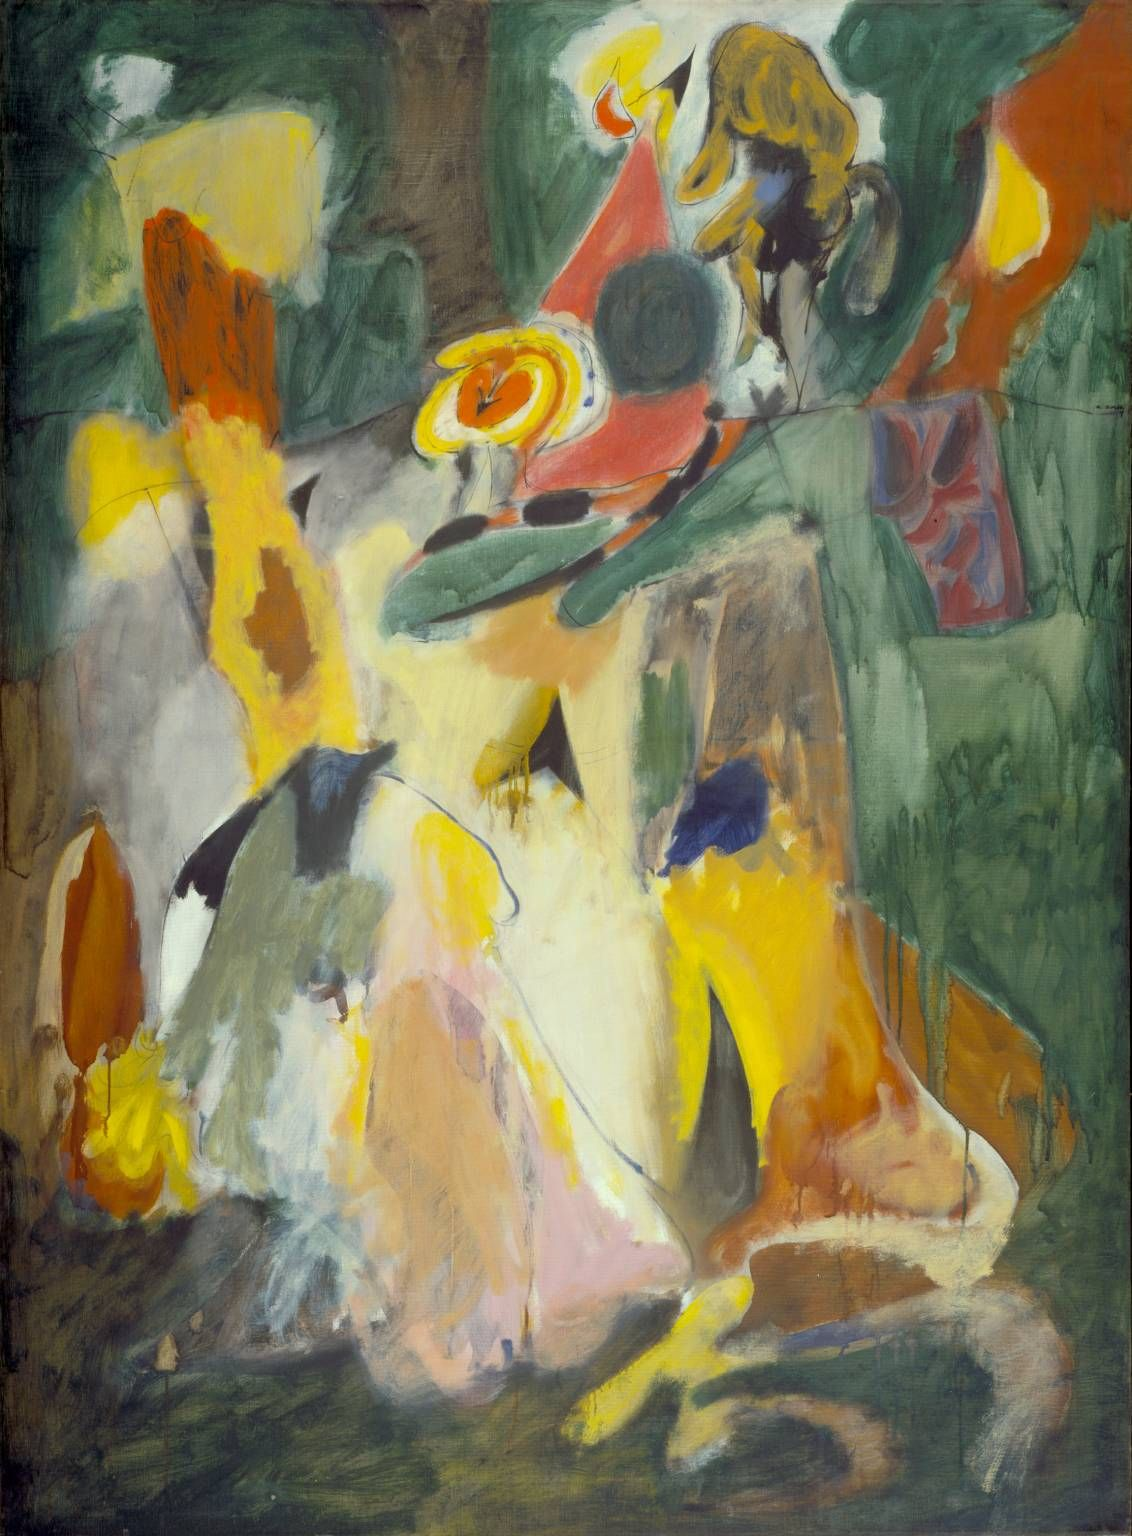 Arshile Gorky Abstract Expressionism Art Painting